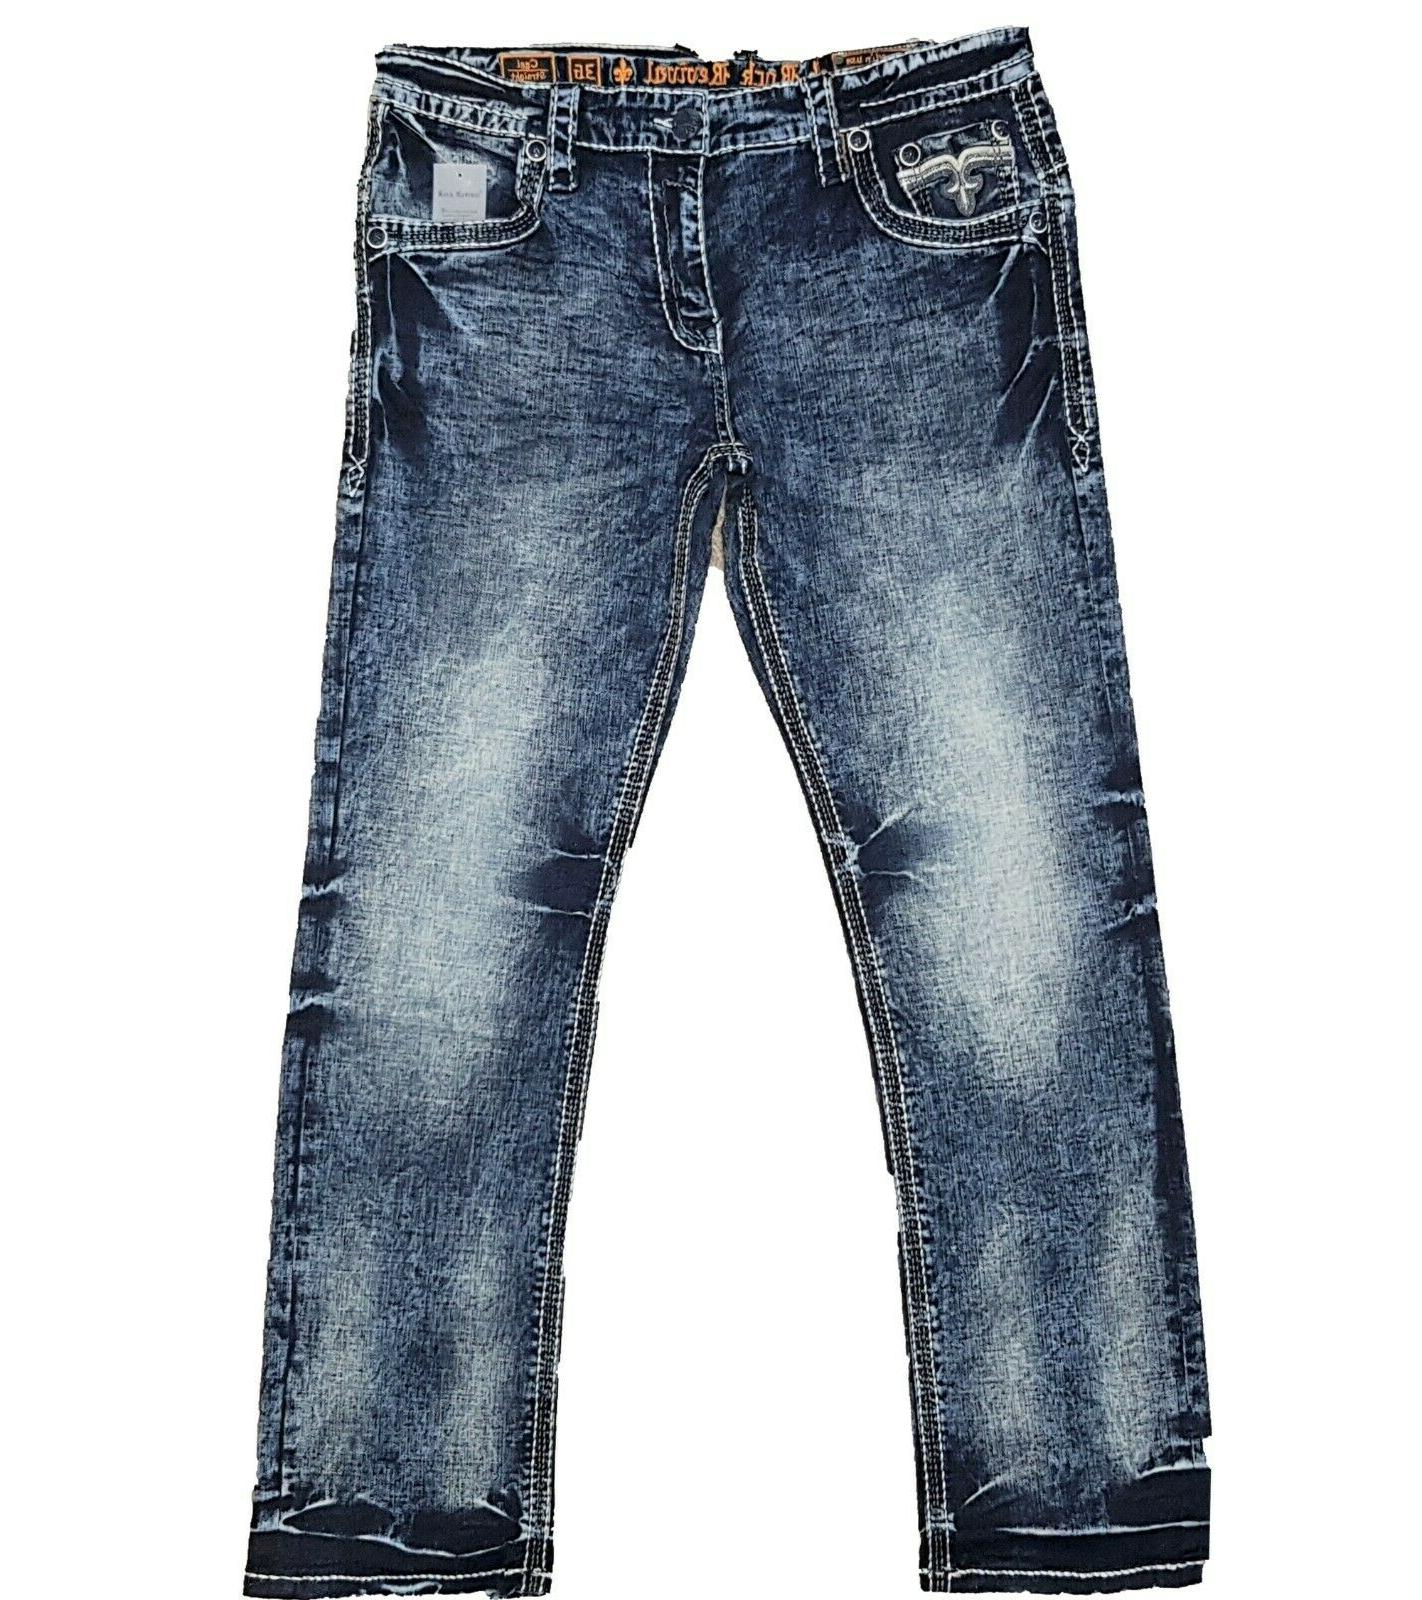 *NWT - Rock Revival Jeans - 32 34 38 40